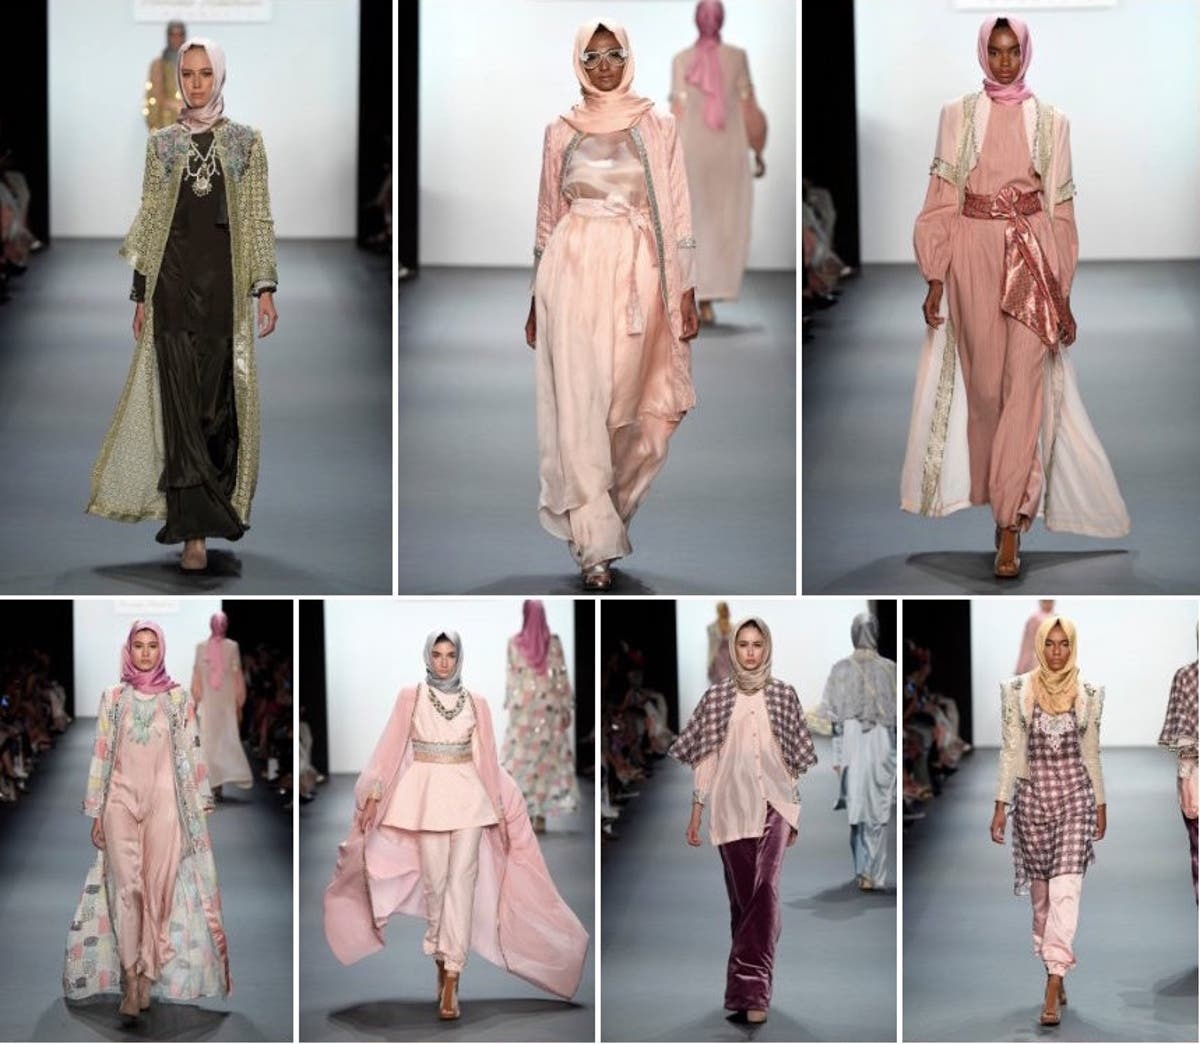 Muslim Designer Presents First Hijab Collection at New York